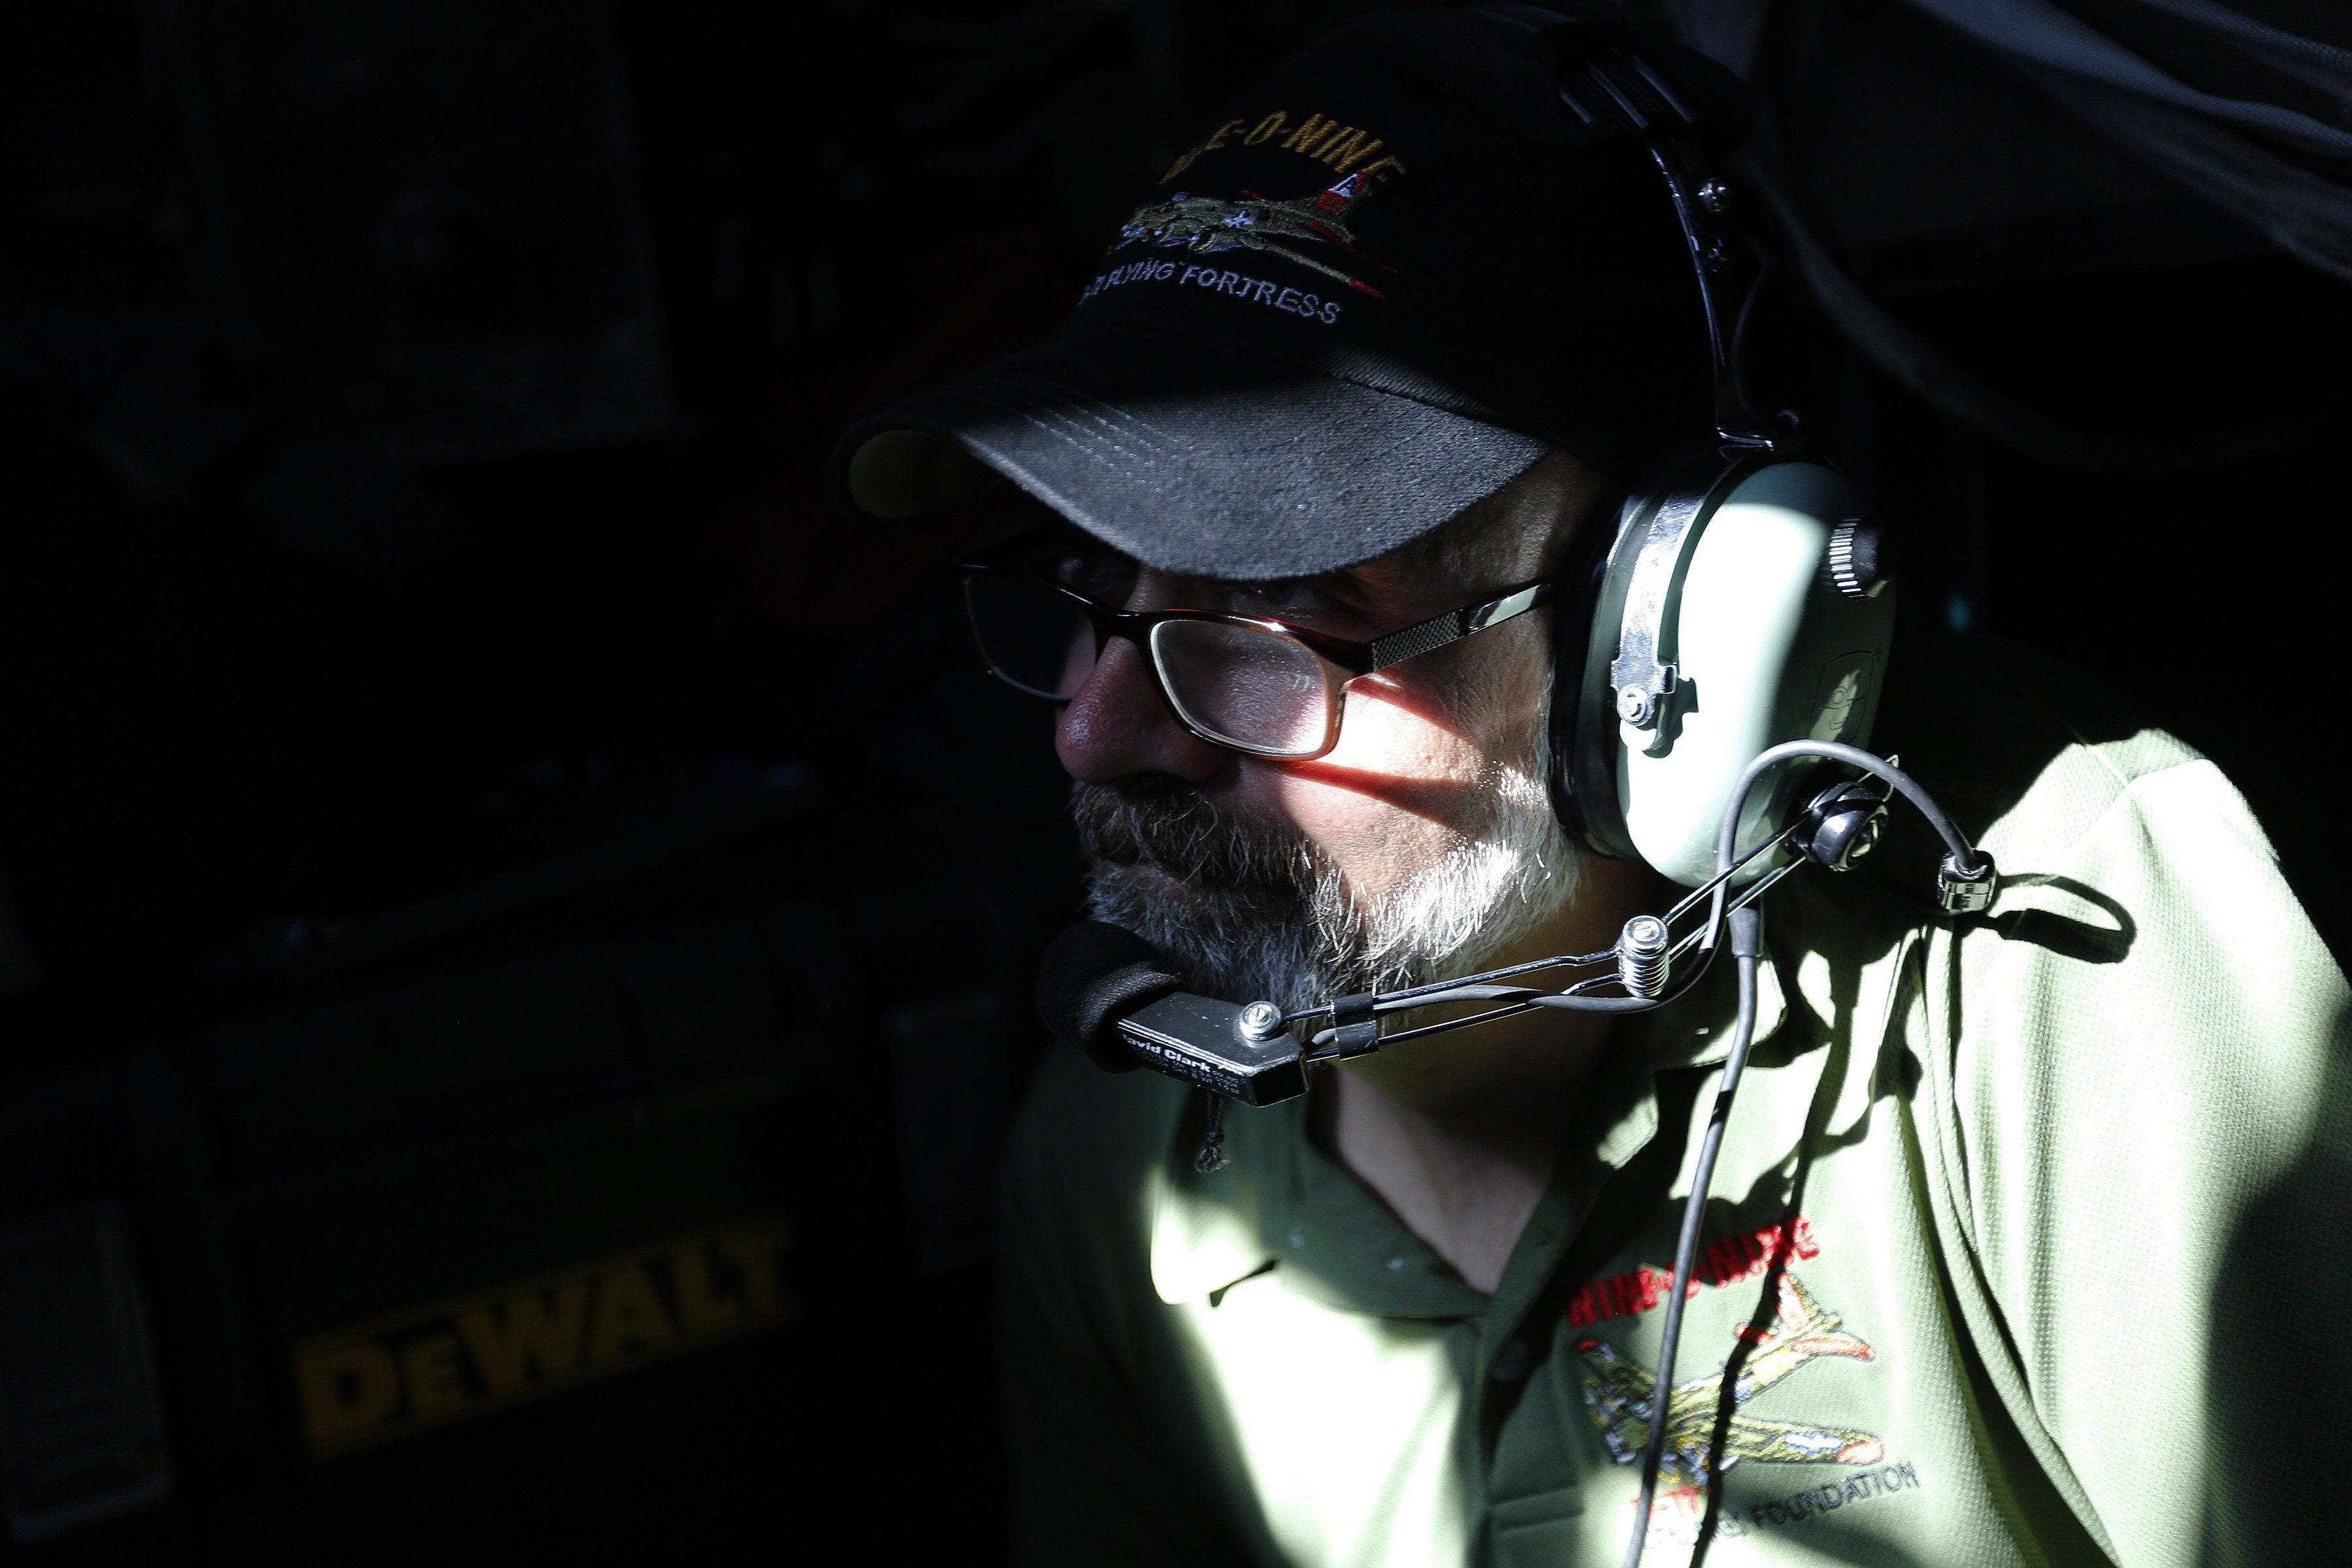 Flight engineer Stephen Arnold, of Seattle, sits in the cabin of the world's only flying B-24J Liberator as it flies over downtown Raleigh during the Wings of Freedom Tour at Raleigh-Durham International Airport, October 19, 2017. Hosted by the Collings Foundation, Wings of Freedom visits more than 100 cities a year to show off working pieces of American war history as well as to educate people about the veterans of WWII. The tour will be in Burlington, NC until 12 pm on Oct. 25 and then move to Statesville, NC through Oct. 27. (Eamon Queeney / North State Journal)